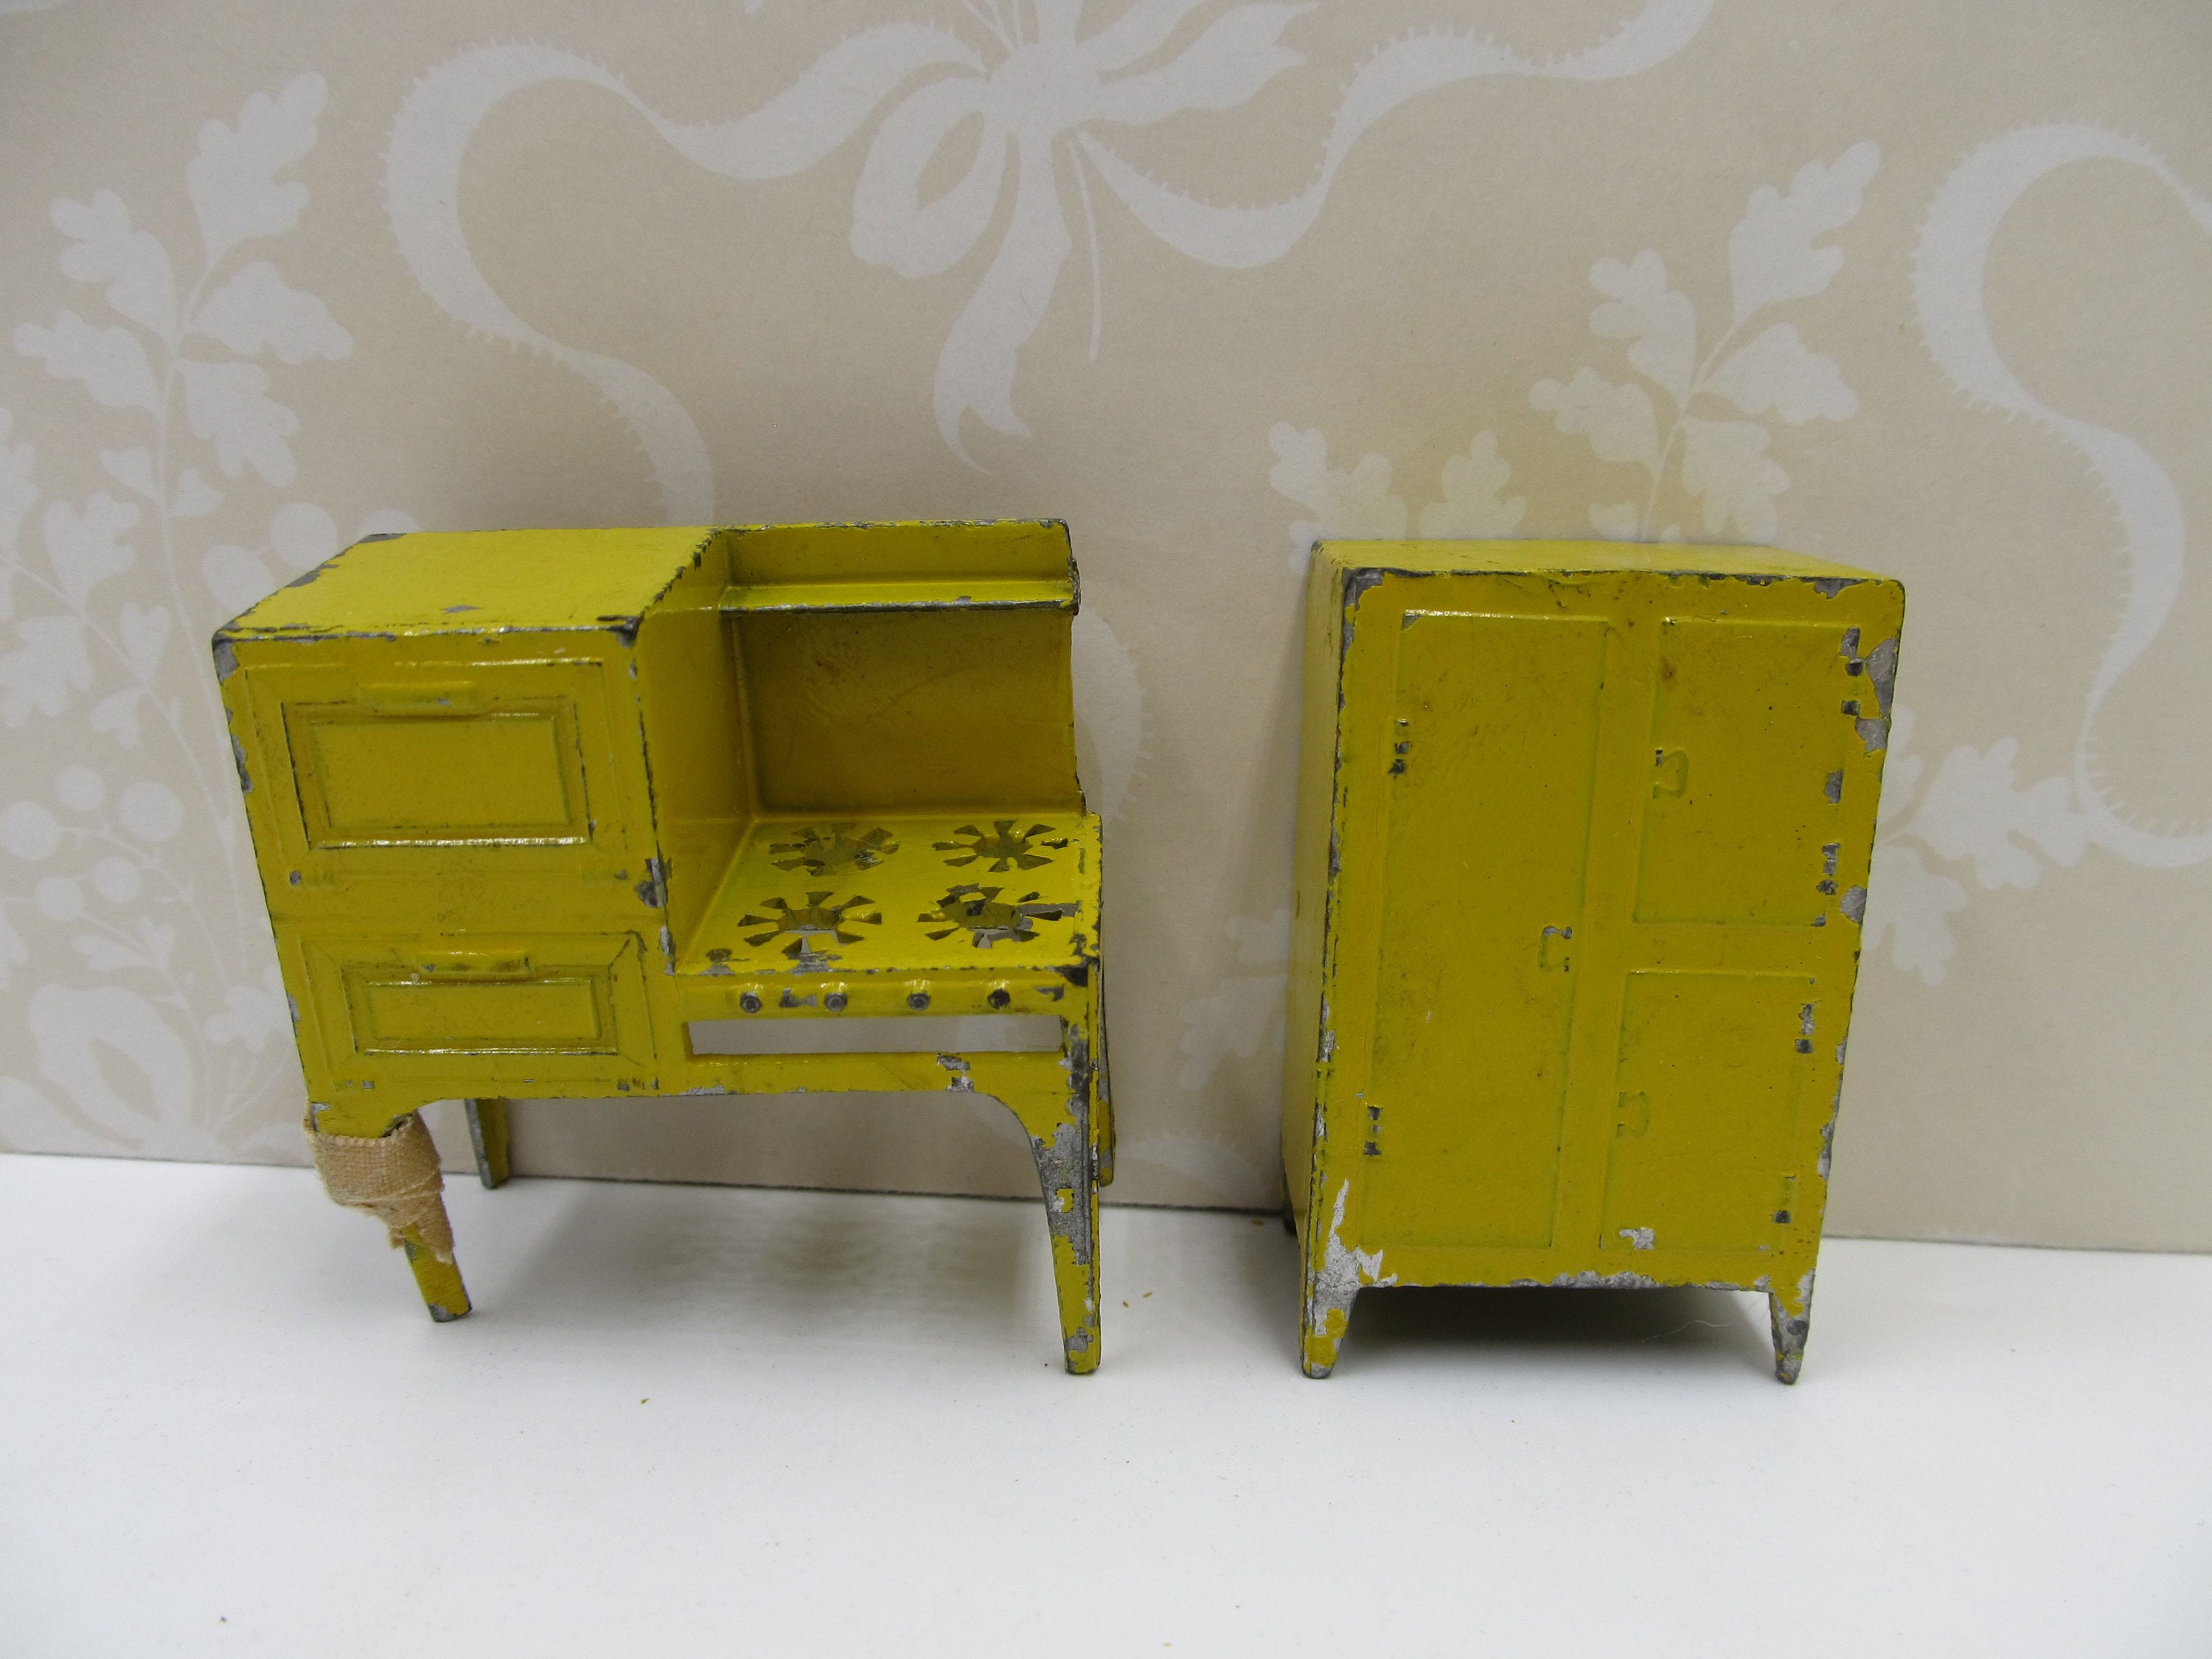 Vintage 1920s Tootsie Toys Dollhouse Stove and Ice Box RARE   Etsy on ice chest hinges and latches, bed cabinet, bar cabinet, electric cabinet,